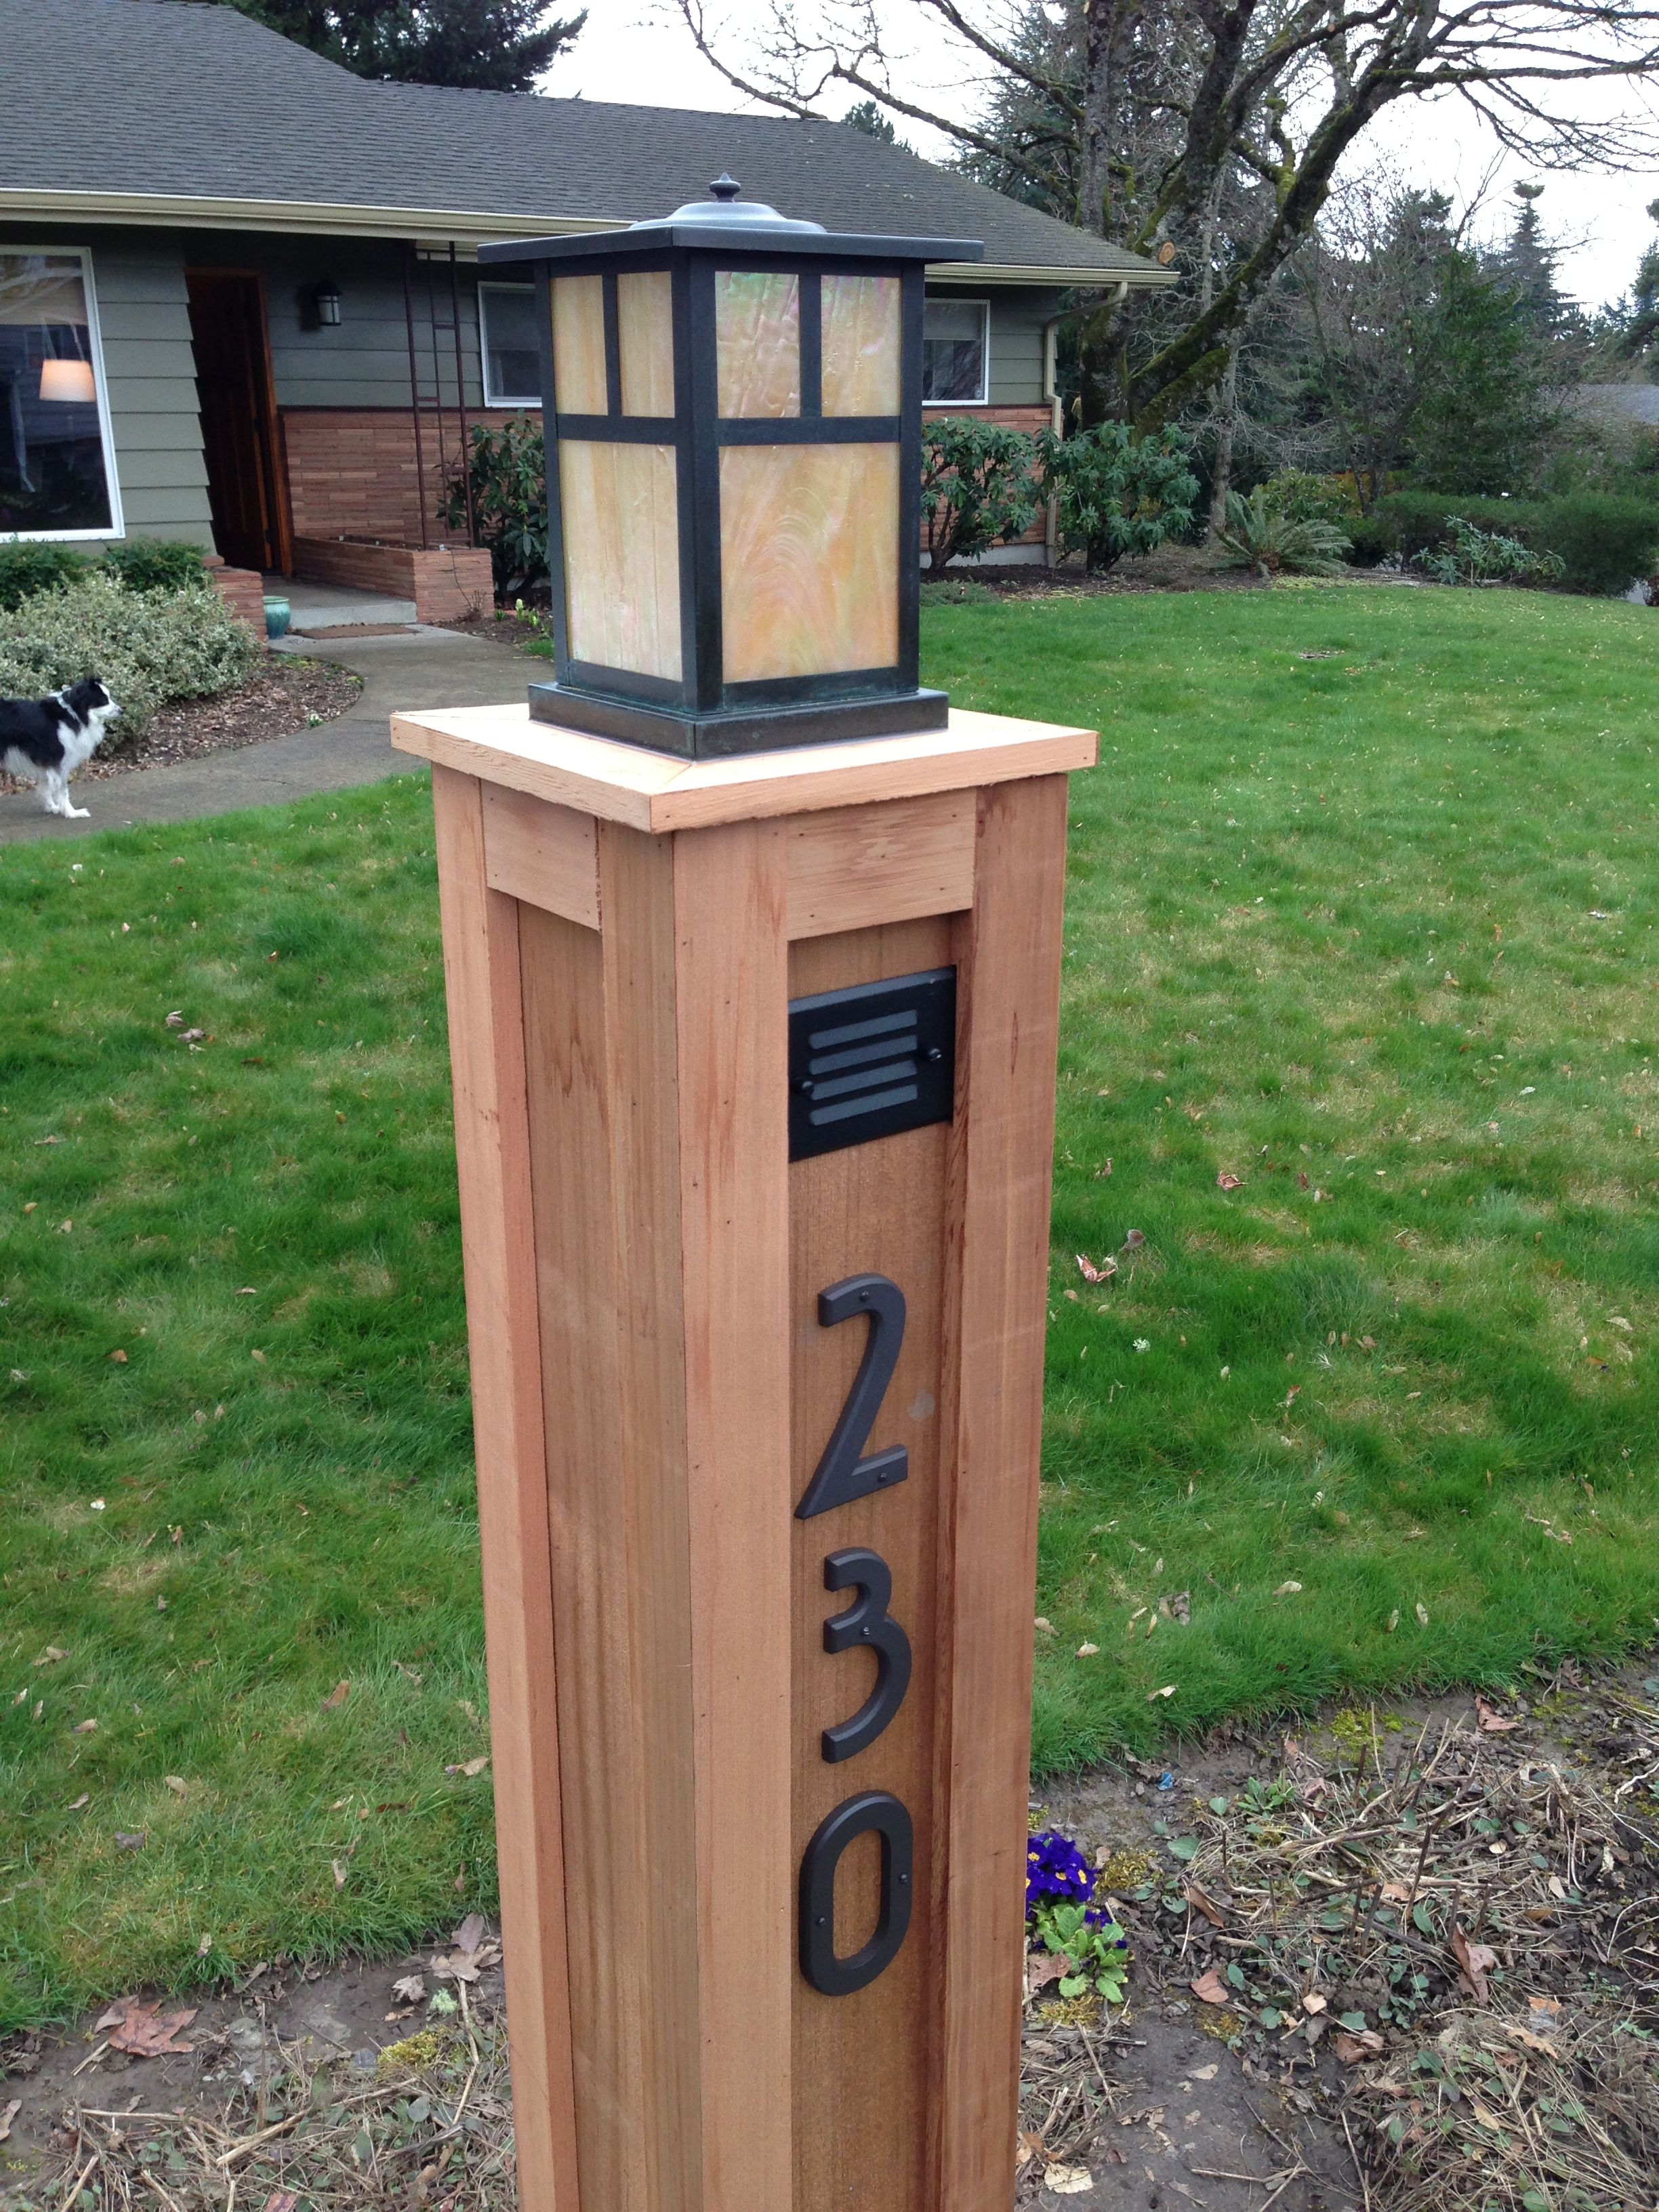 Images Of Craftsman Light Posts An Outlet For Christmas Lights And A Beautiful Craftsman Light On Top Craftsman House Numbers Craftsman Lighting Patio Lighting